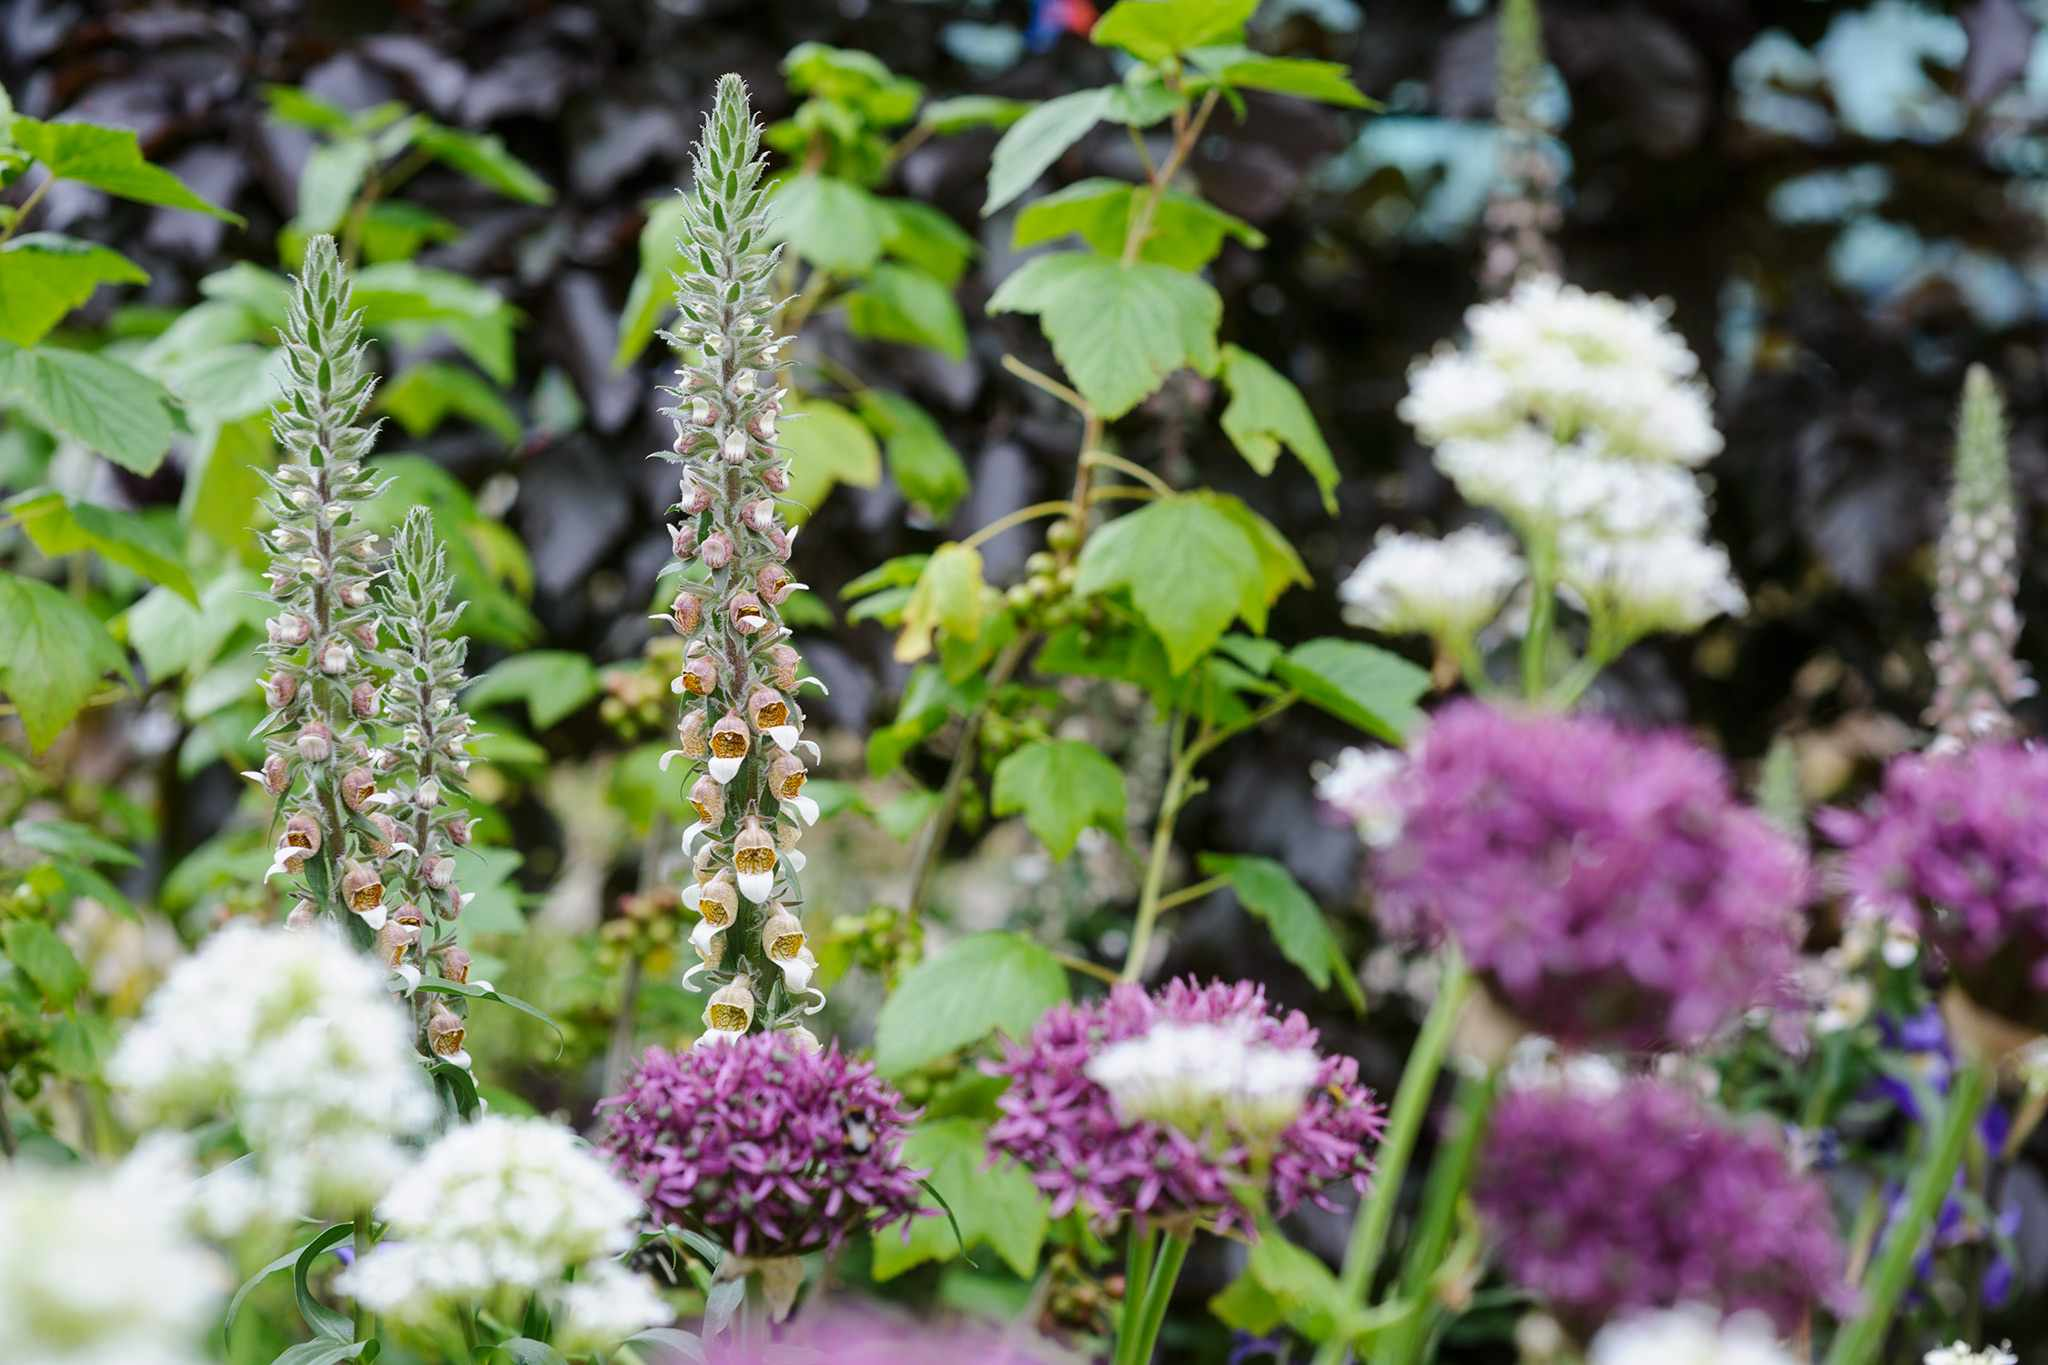 Rusty foxgloves, white valerian and alliums